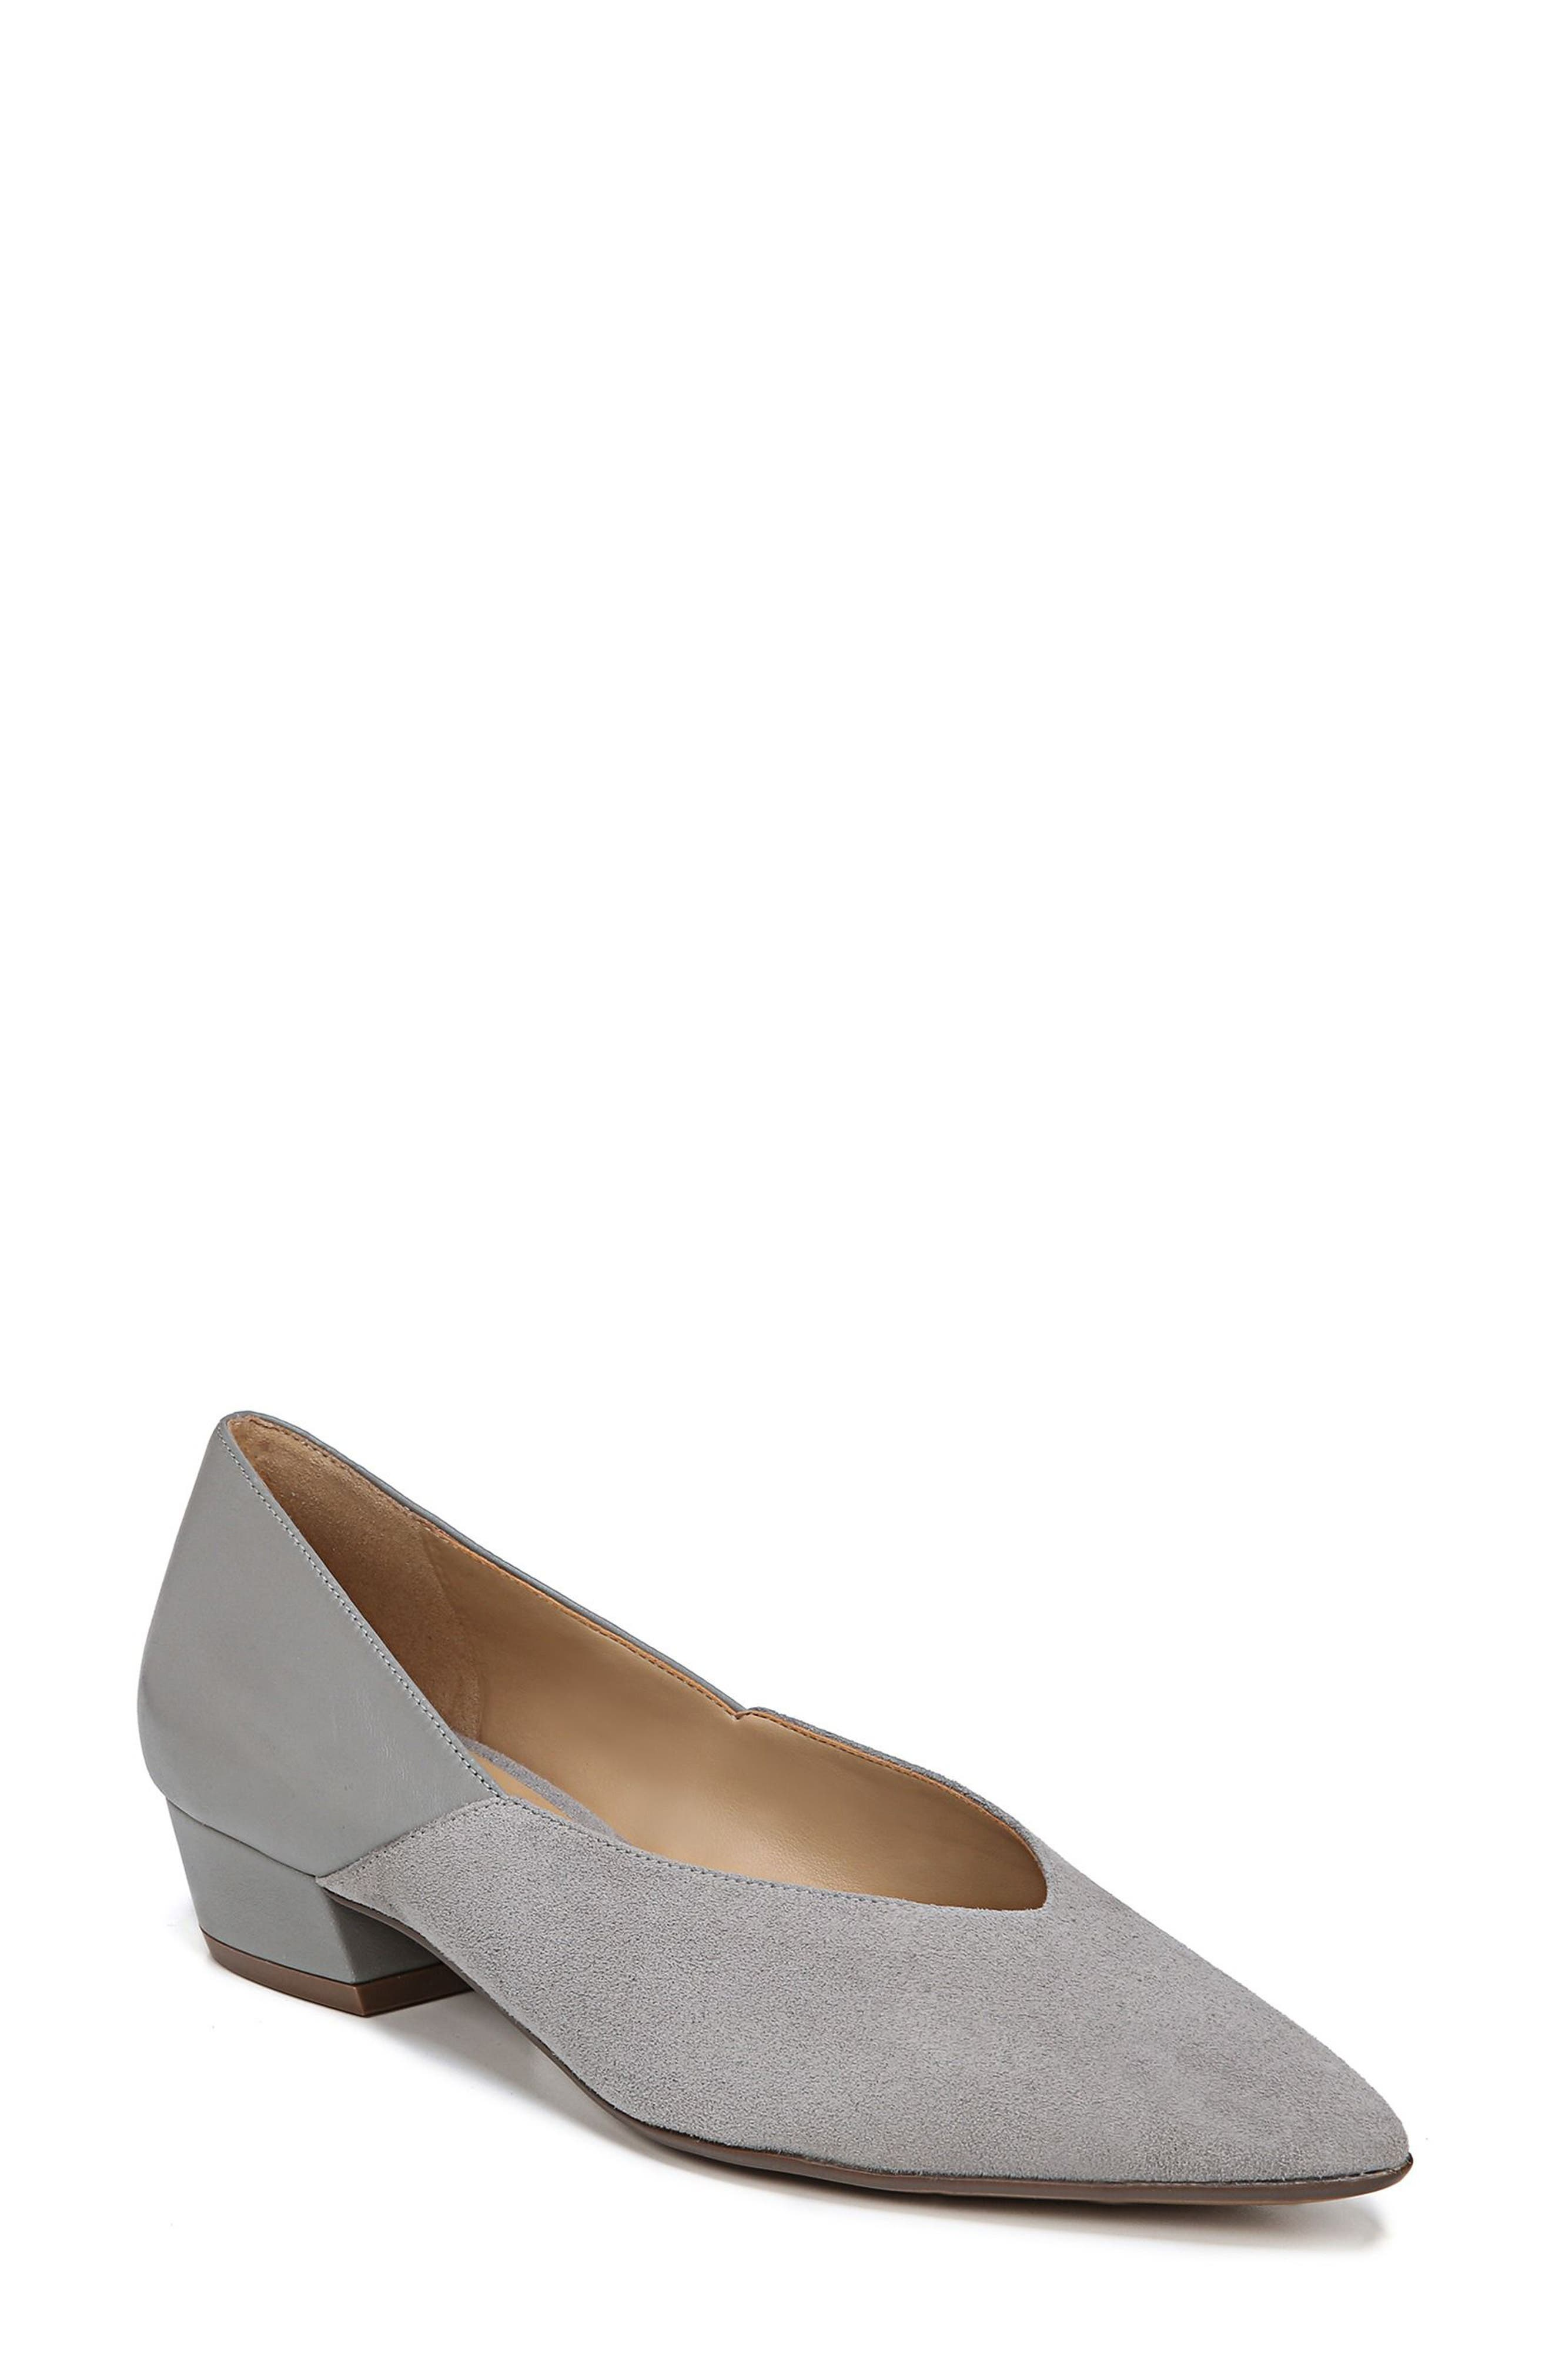 Naturalizer Betty Pump